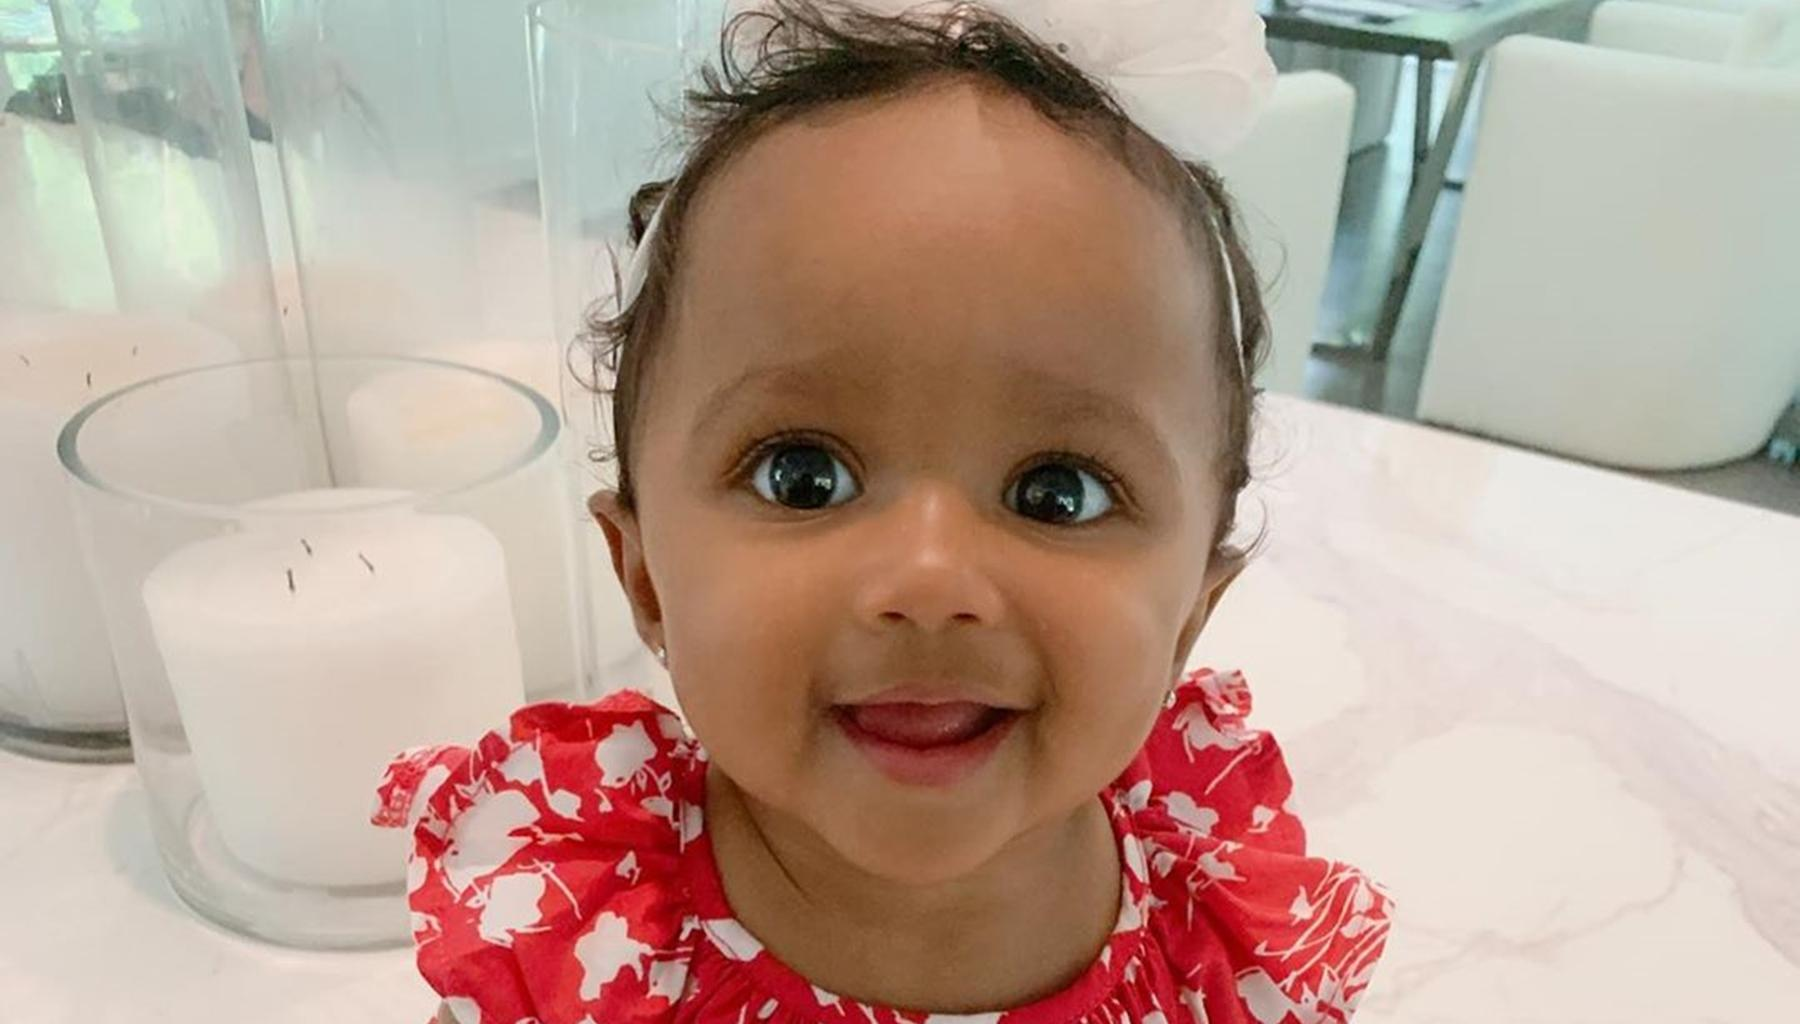 Kenya Moore Makes Huge Revelation About Baby Brooklyn Daly And No One Believes Her